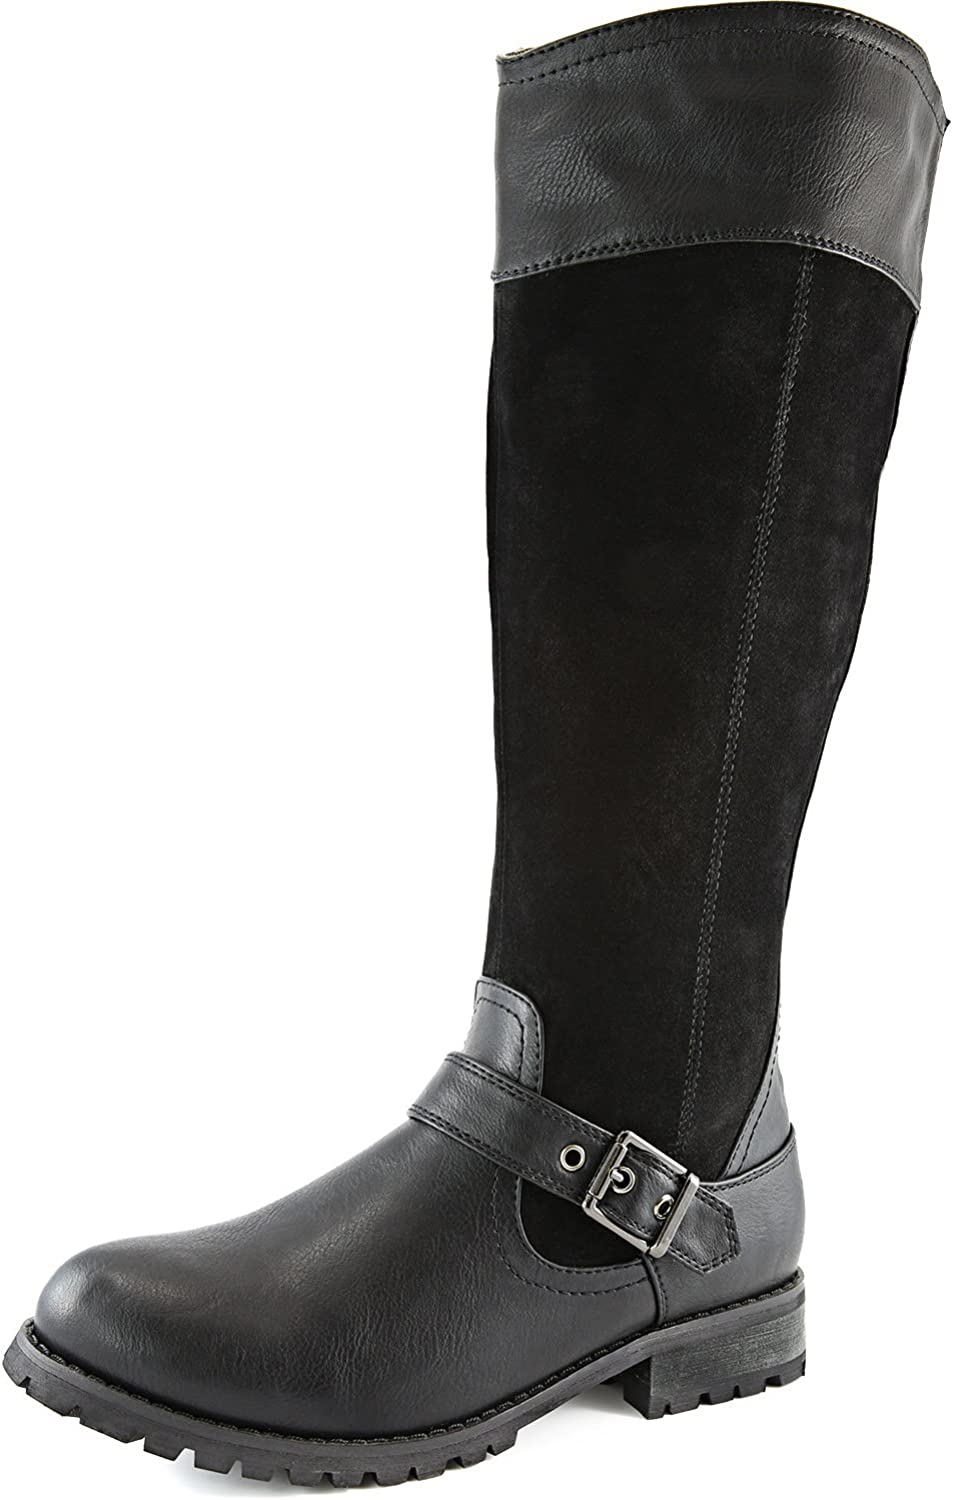 DailyShoes Womens Knee High Ankle Buckle Strap Military Combat Boots